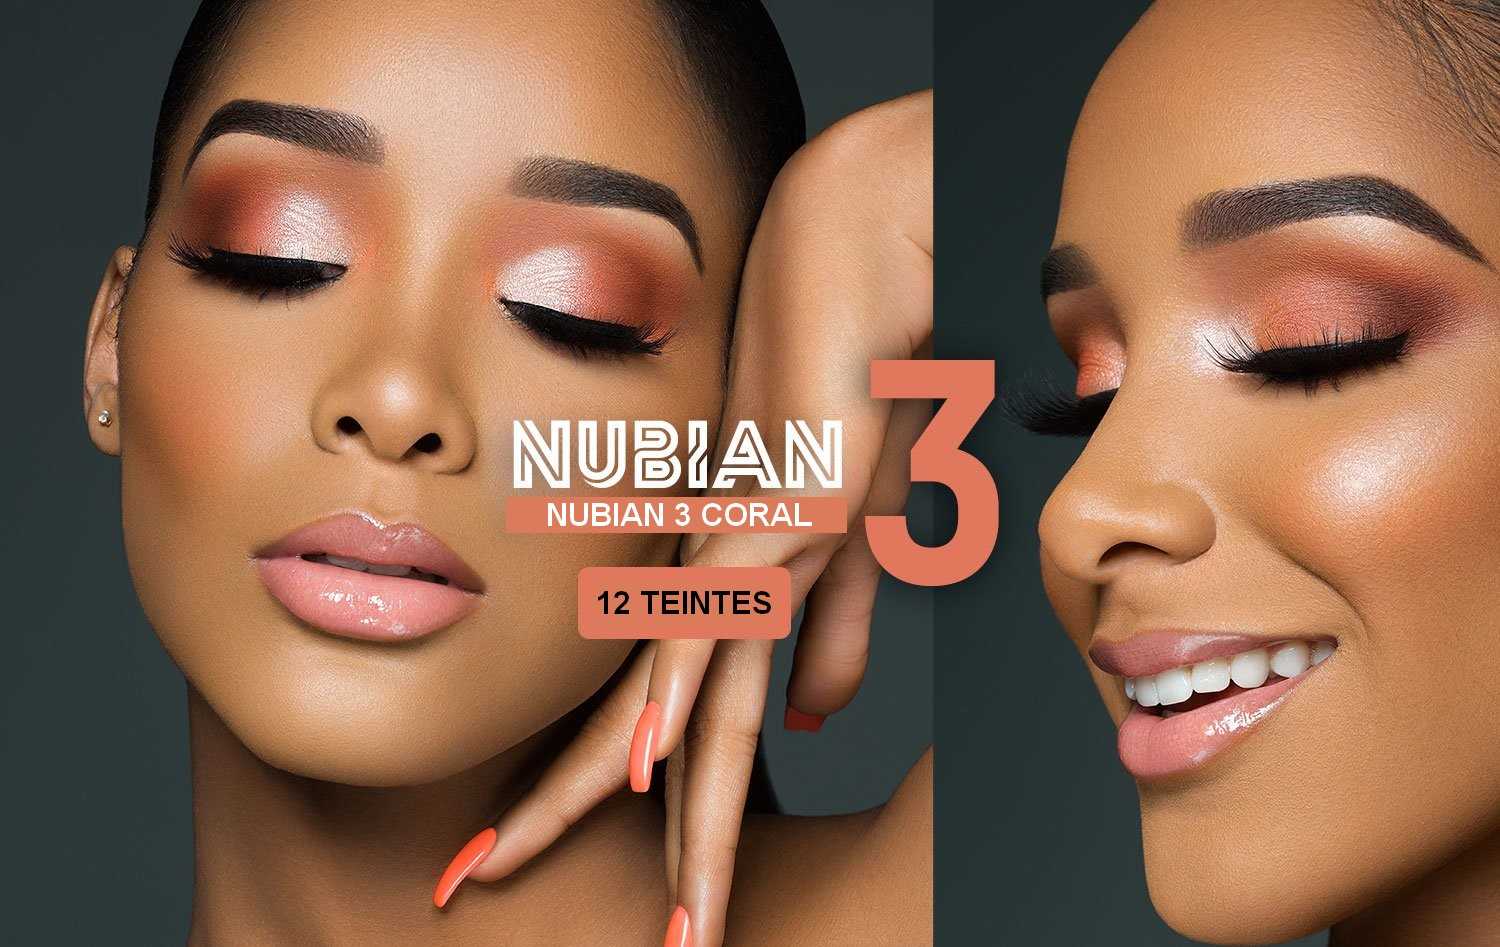 THE NUBIAN 3 CORAL EYESHADOW PALETTE JUVIAS PLACE | 12 Shades  THE NUBIAN 3 CORAL EYESHADOW PALETTE JUVIAS PLACE | 12 Shades